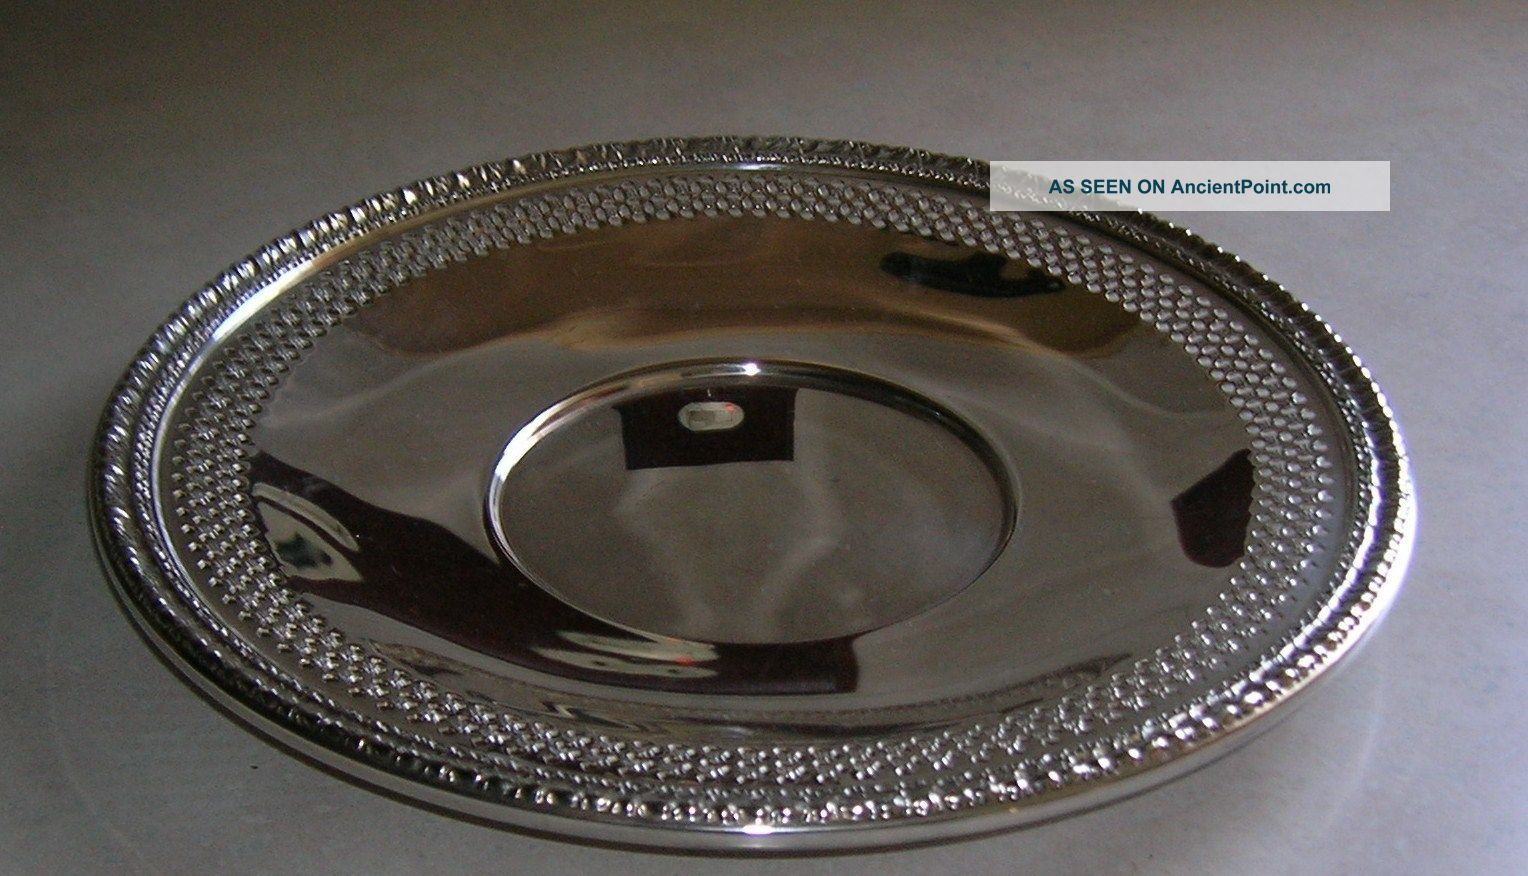 Vintage Reed & Barton Silverplated Underplate 10 1/2 Inches Dia - Ca 1960 ' S Plates & Chargers photo